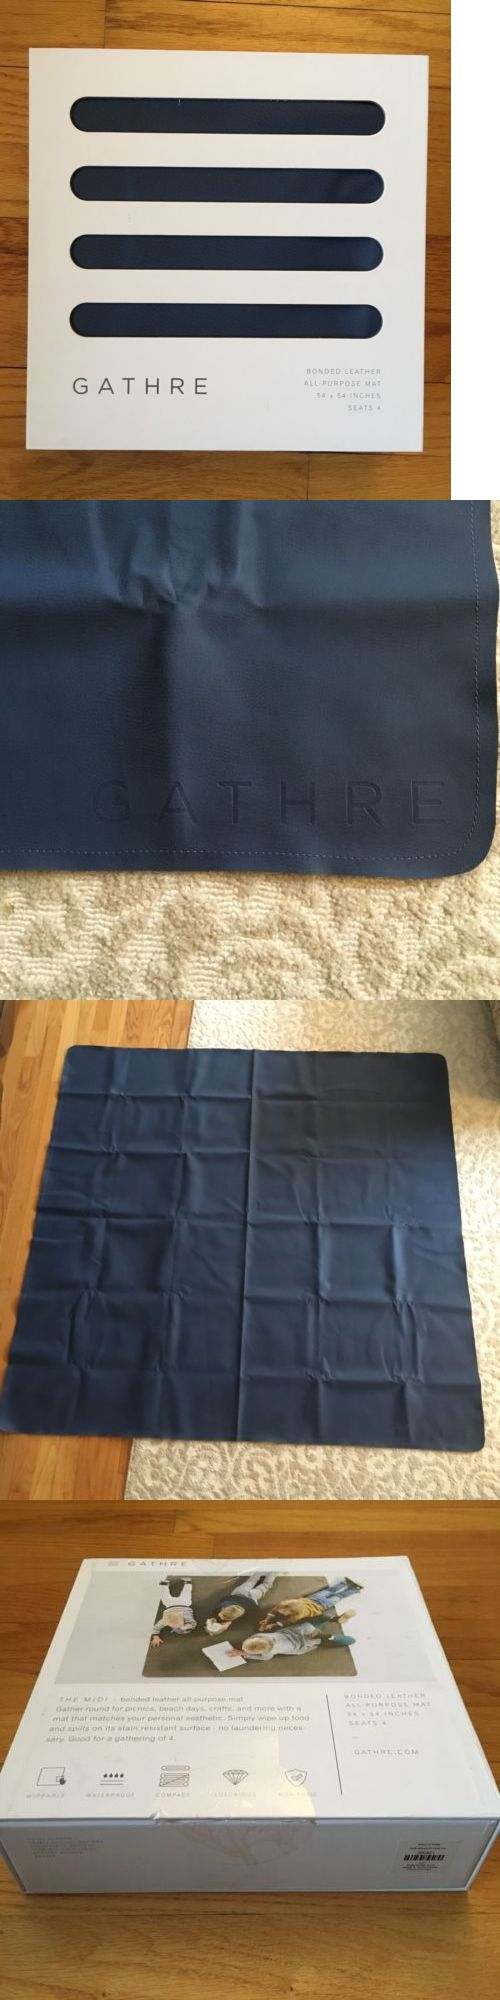 Baby Gyms and Play Mats 19069: Gathre Midi Leather Play Mat Navy Blue | Open Box | Land Of Nod Activity Picnic -> BUY IT NOW ONLY: $70 on eBay!